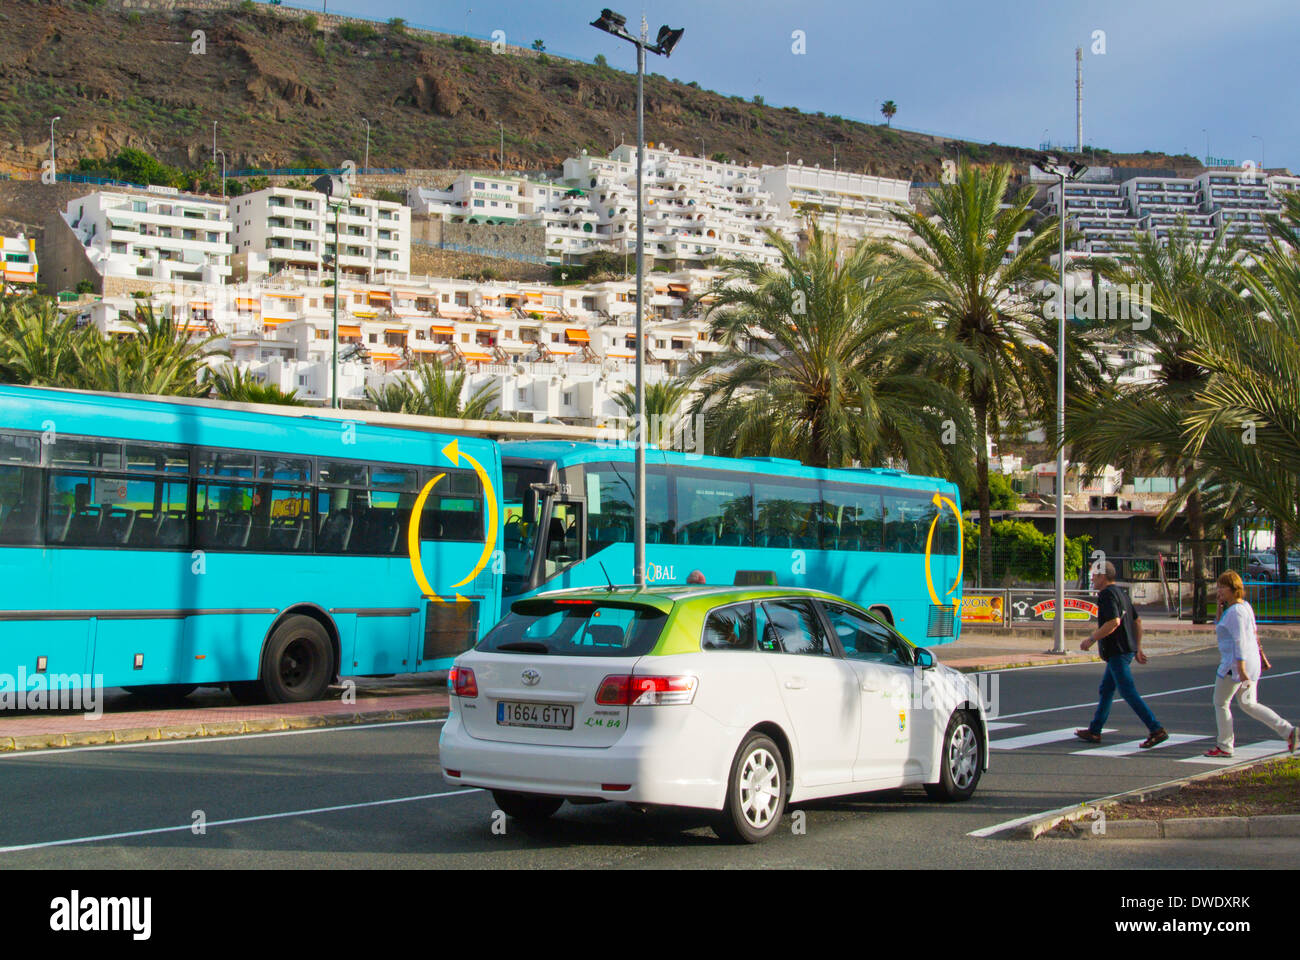 Taxi and bus long distance bus station puerto rico gran canaria stock photo royalty free - Taxi puerto rico gran canaria ...